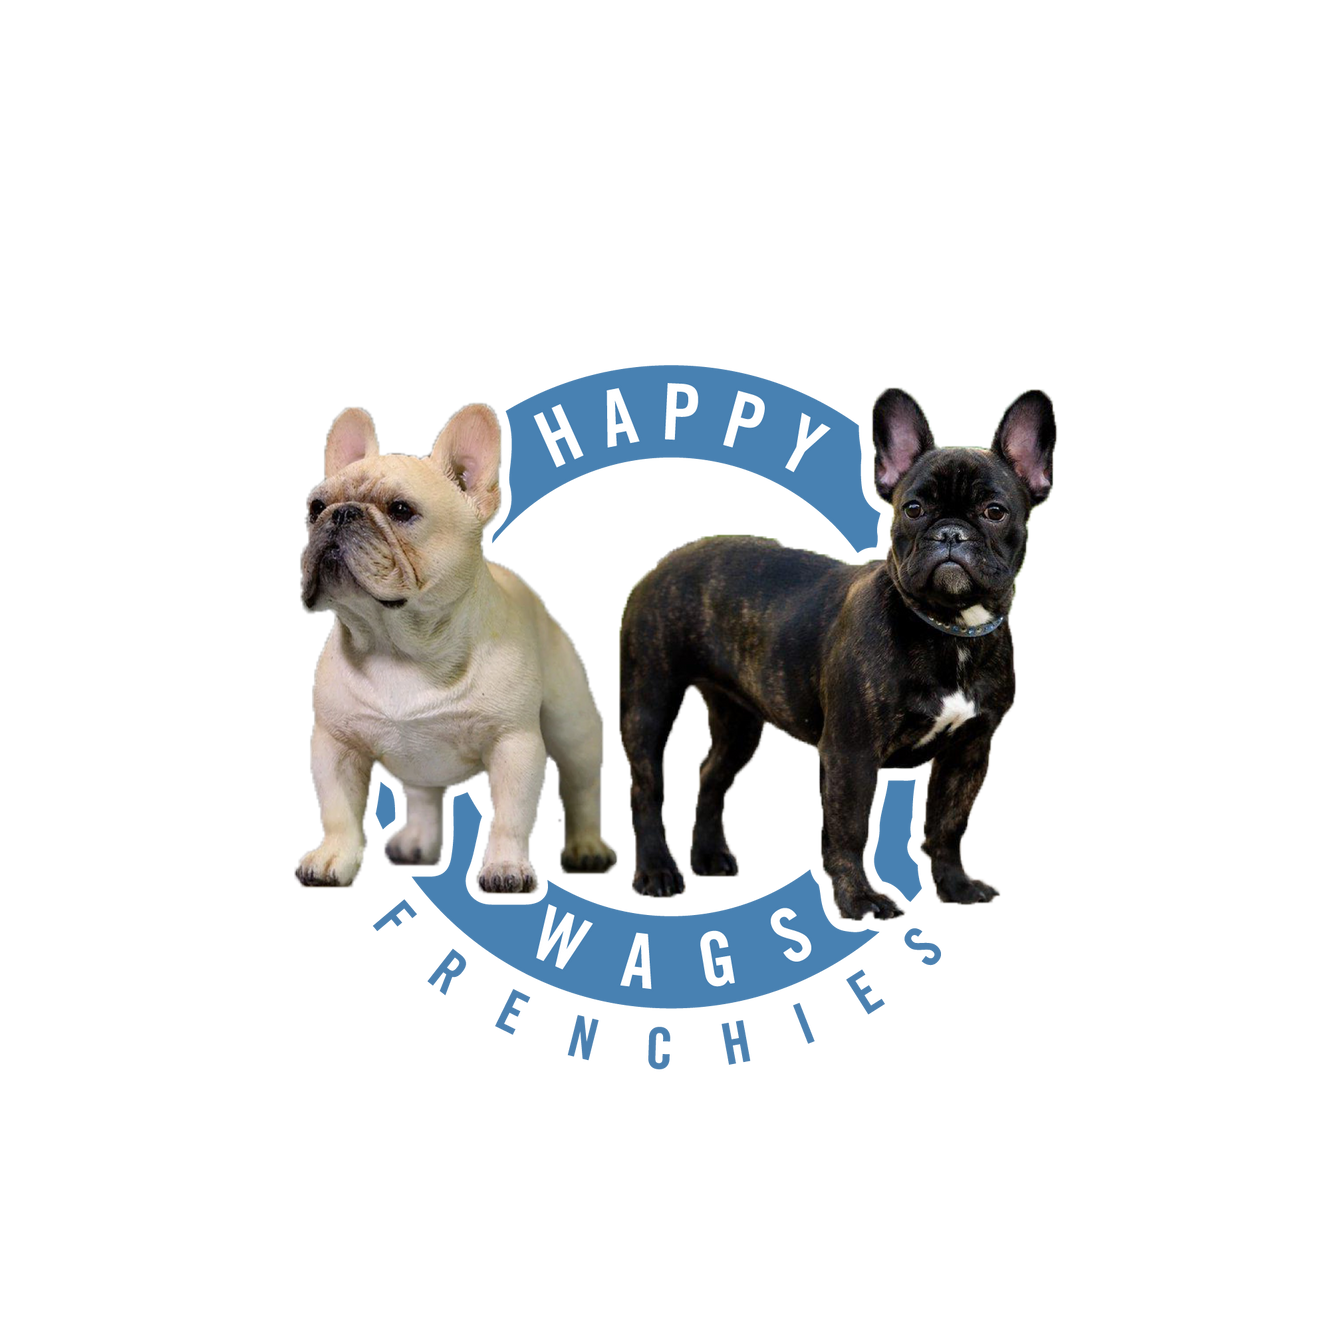 French Bulldogs For Sale | Happy Wags French Bulldogs | Ohio